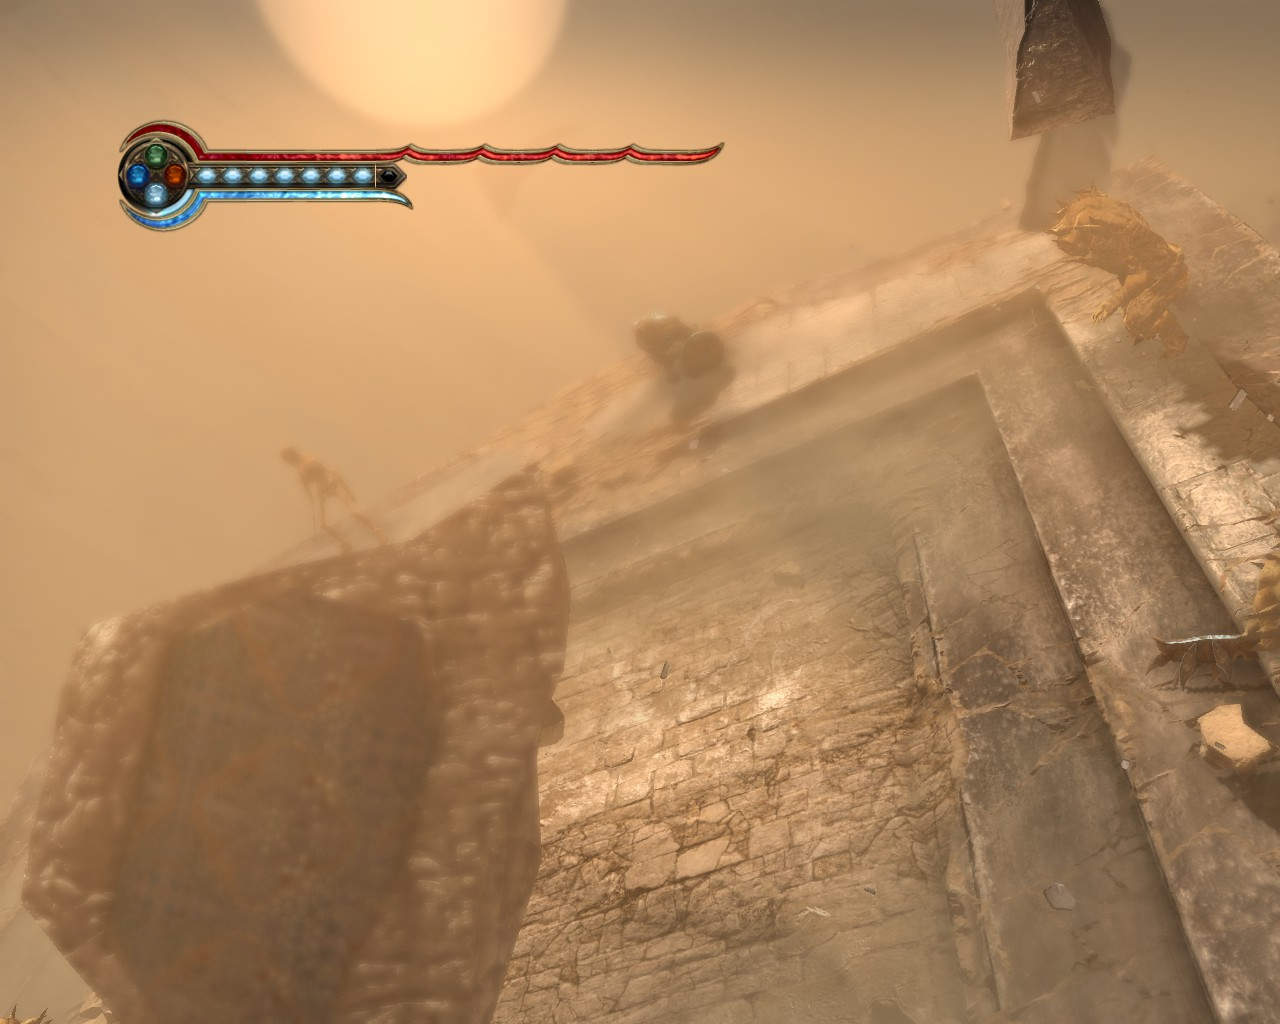 Prince of Persia 2014-06-04 20-20-35-59.jpg - Prince of Persia: The Forgotten Sands